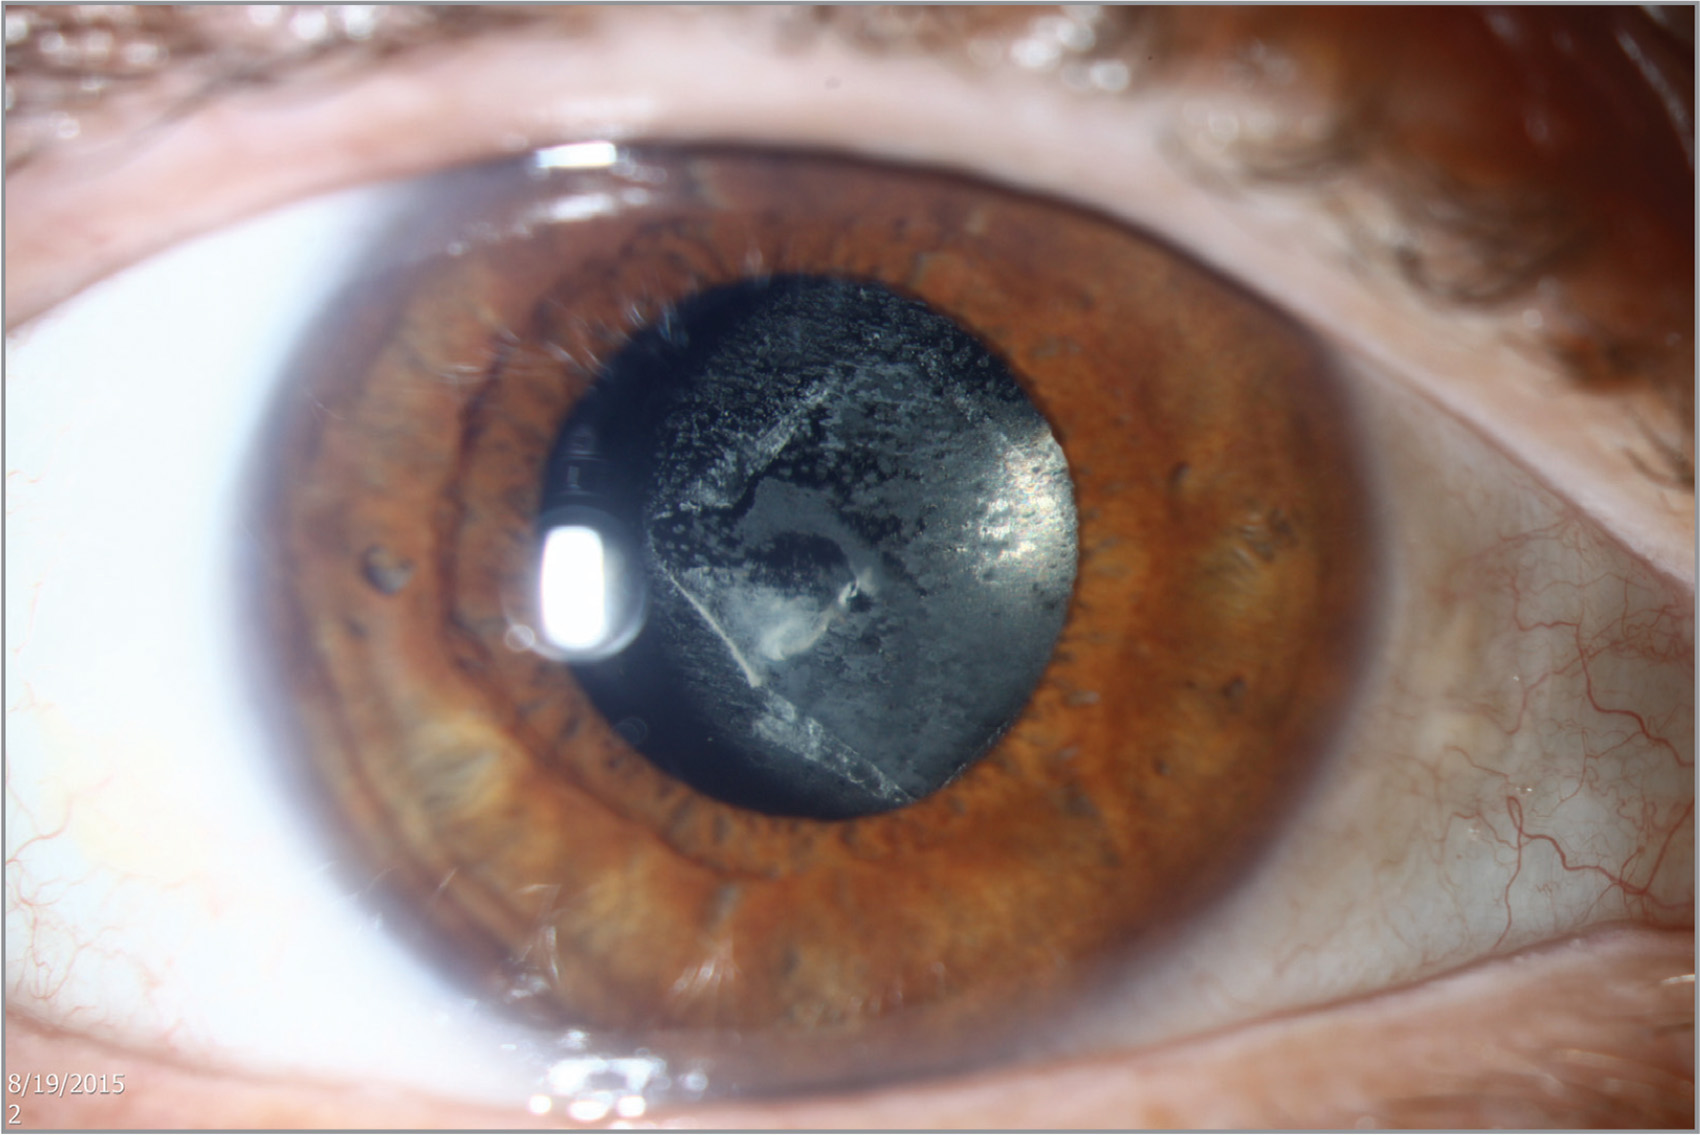 Slit-lamp photograph of the right eye showing accumulation of granular deposits on the posterior surface of the intraocular lens at the preoperative visit.